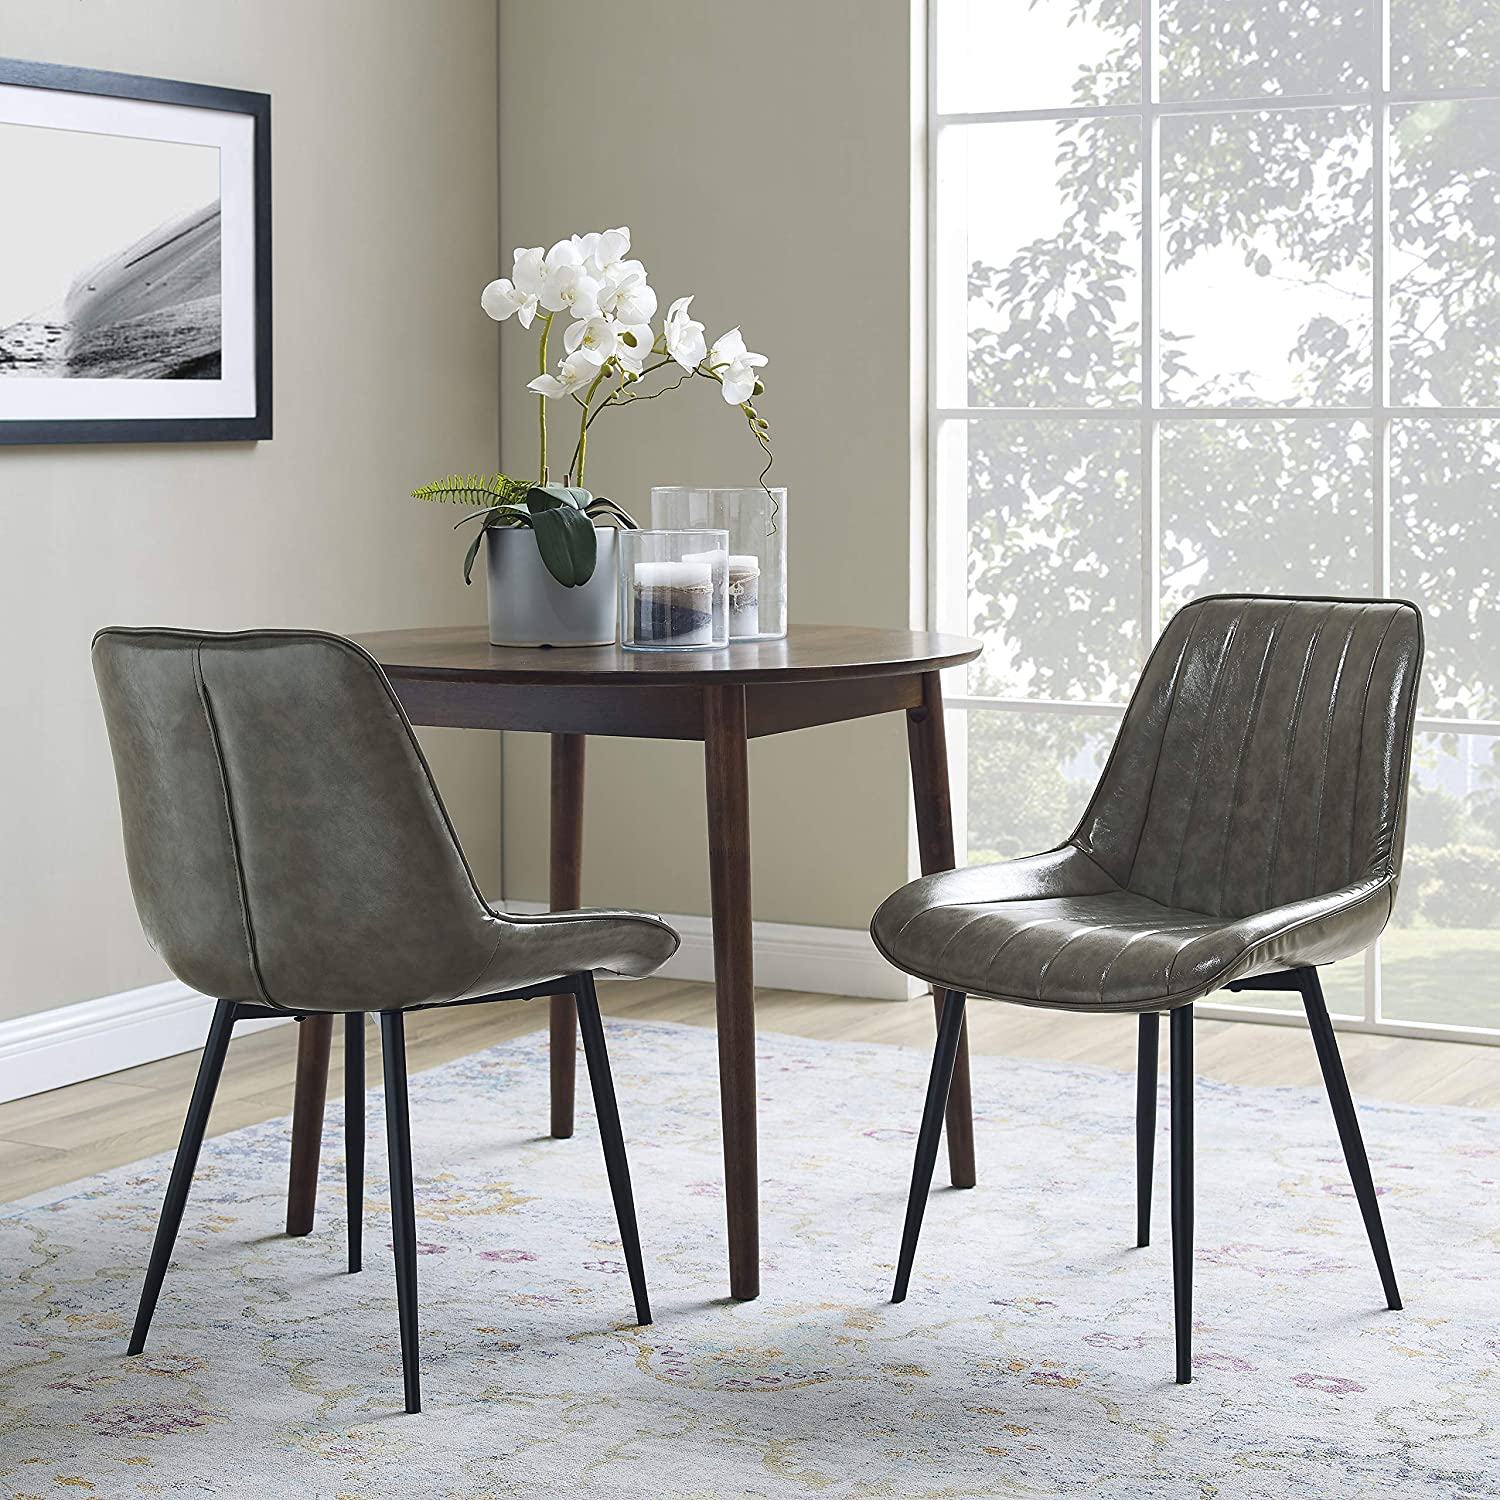 Amazon Com Volans Dining Chairs Modern Mid Century Retro Armless Leather Upholstered Side Chair With Metal Legs For Kitchen Dining Room Living Room Bedroom Desk Grey Set Of 2 Chairs